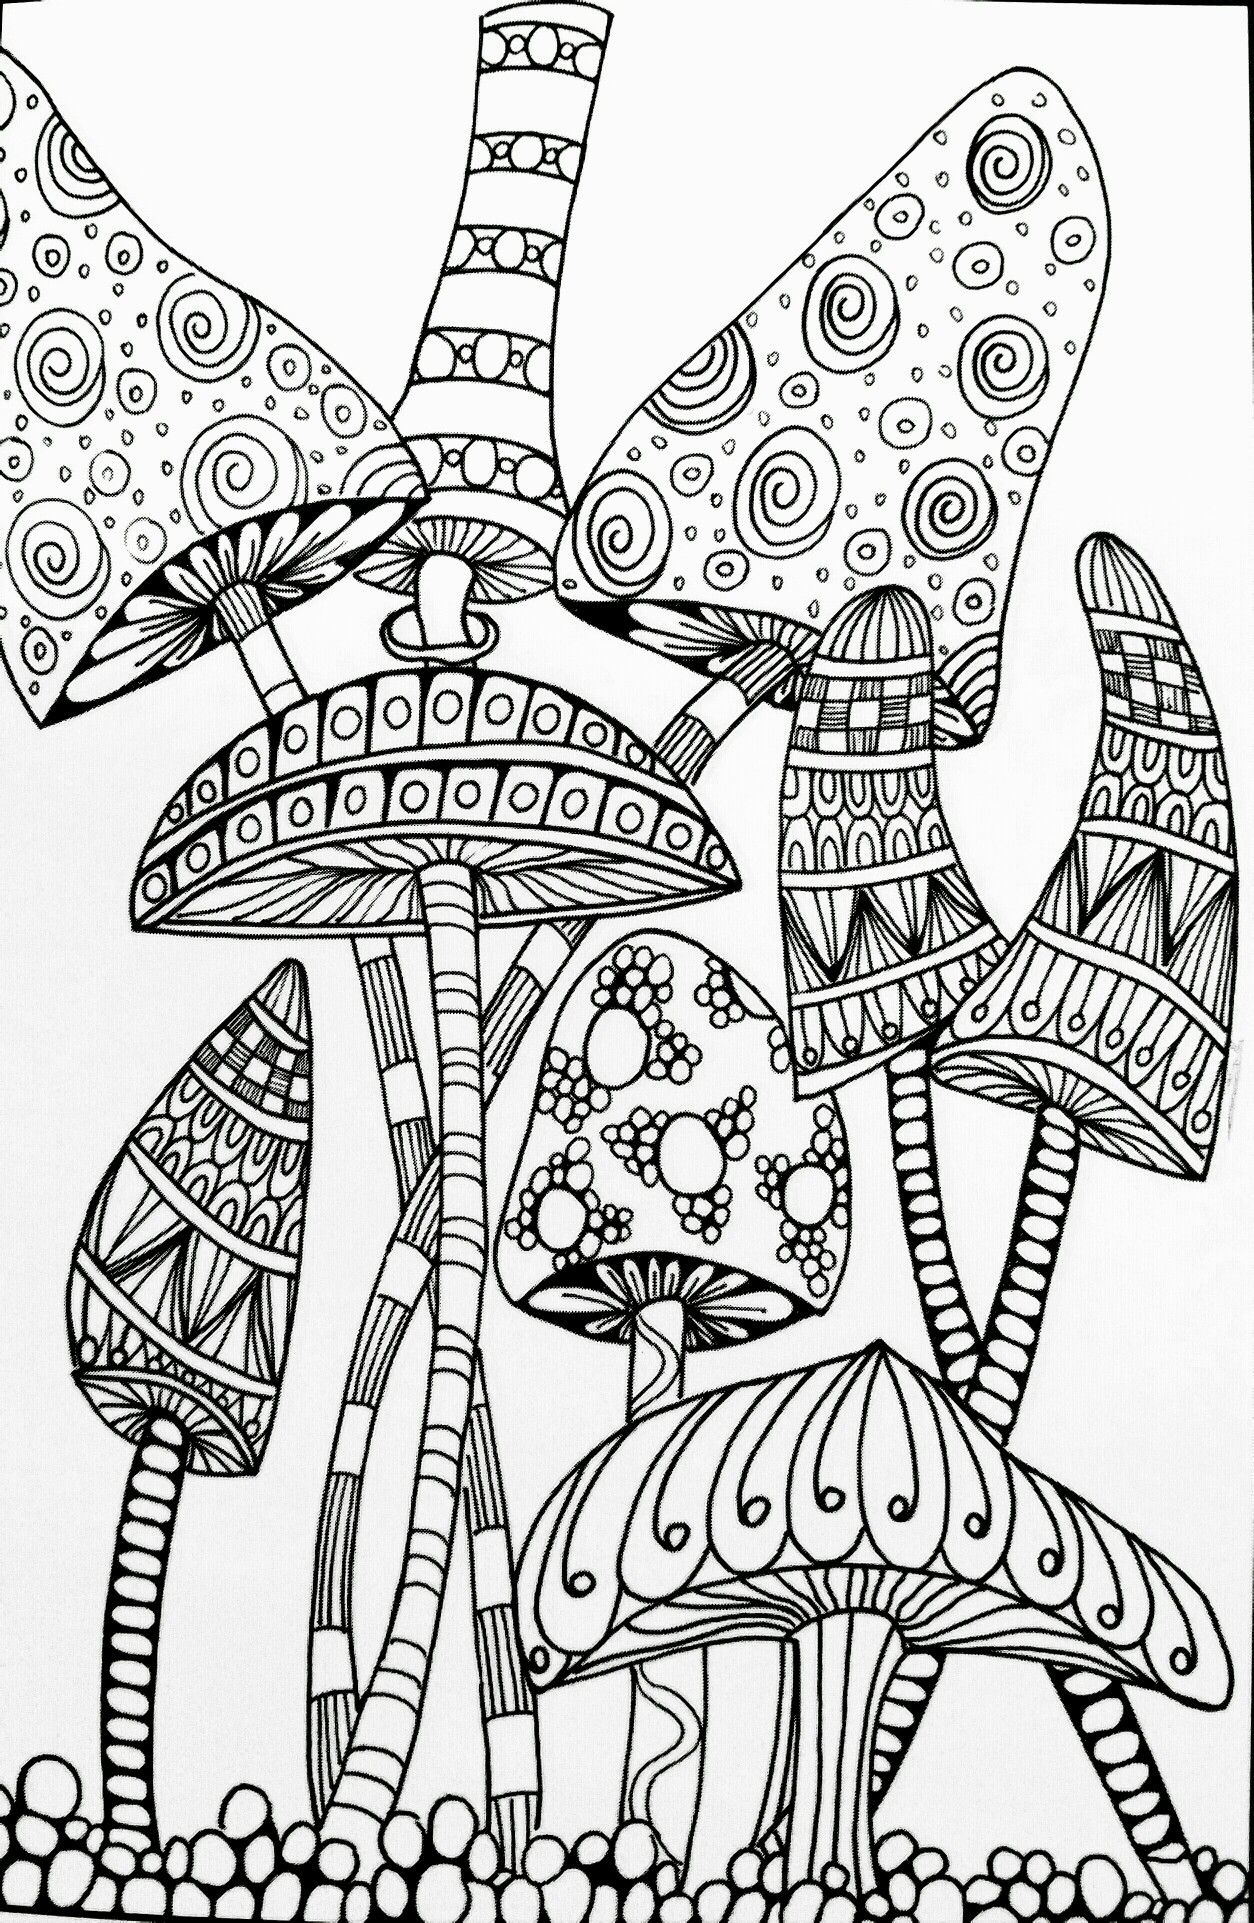 Mushroom Adult Coloring Pages Download In 2020 Mandala Coloring